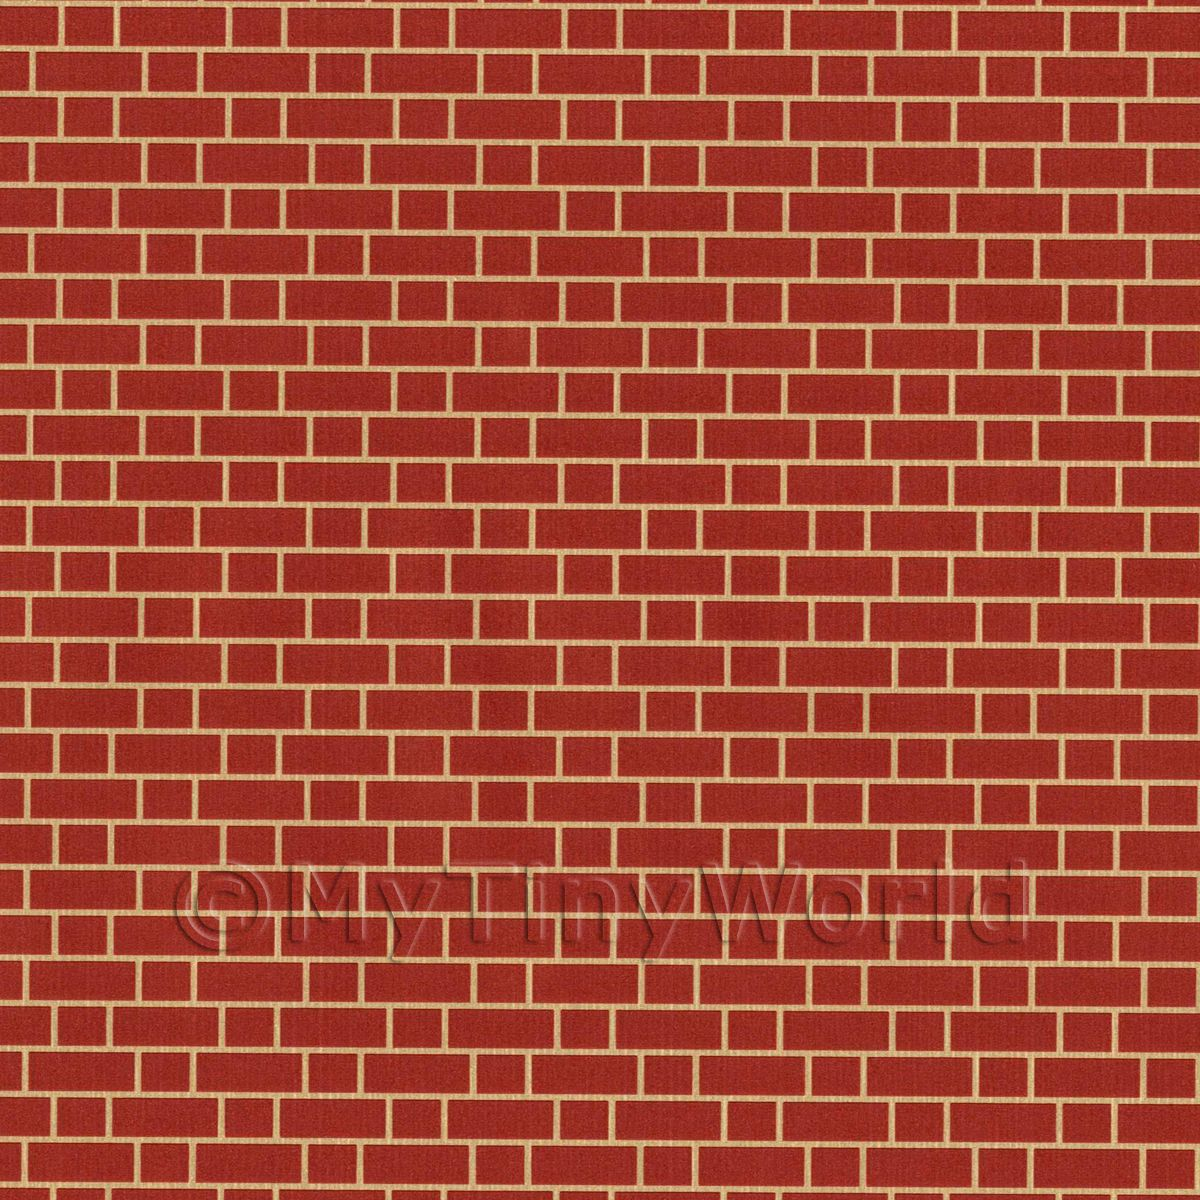 3d Embossed Brick Wallpaper Cladding And Brick Papers Dolls House Miniature